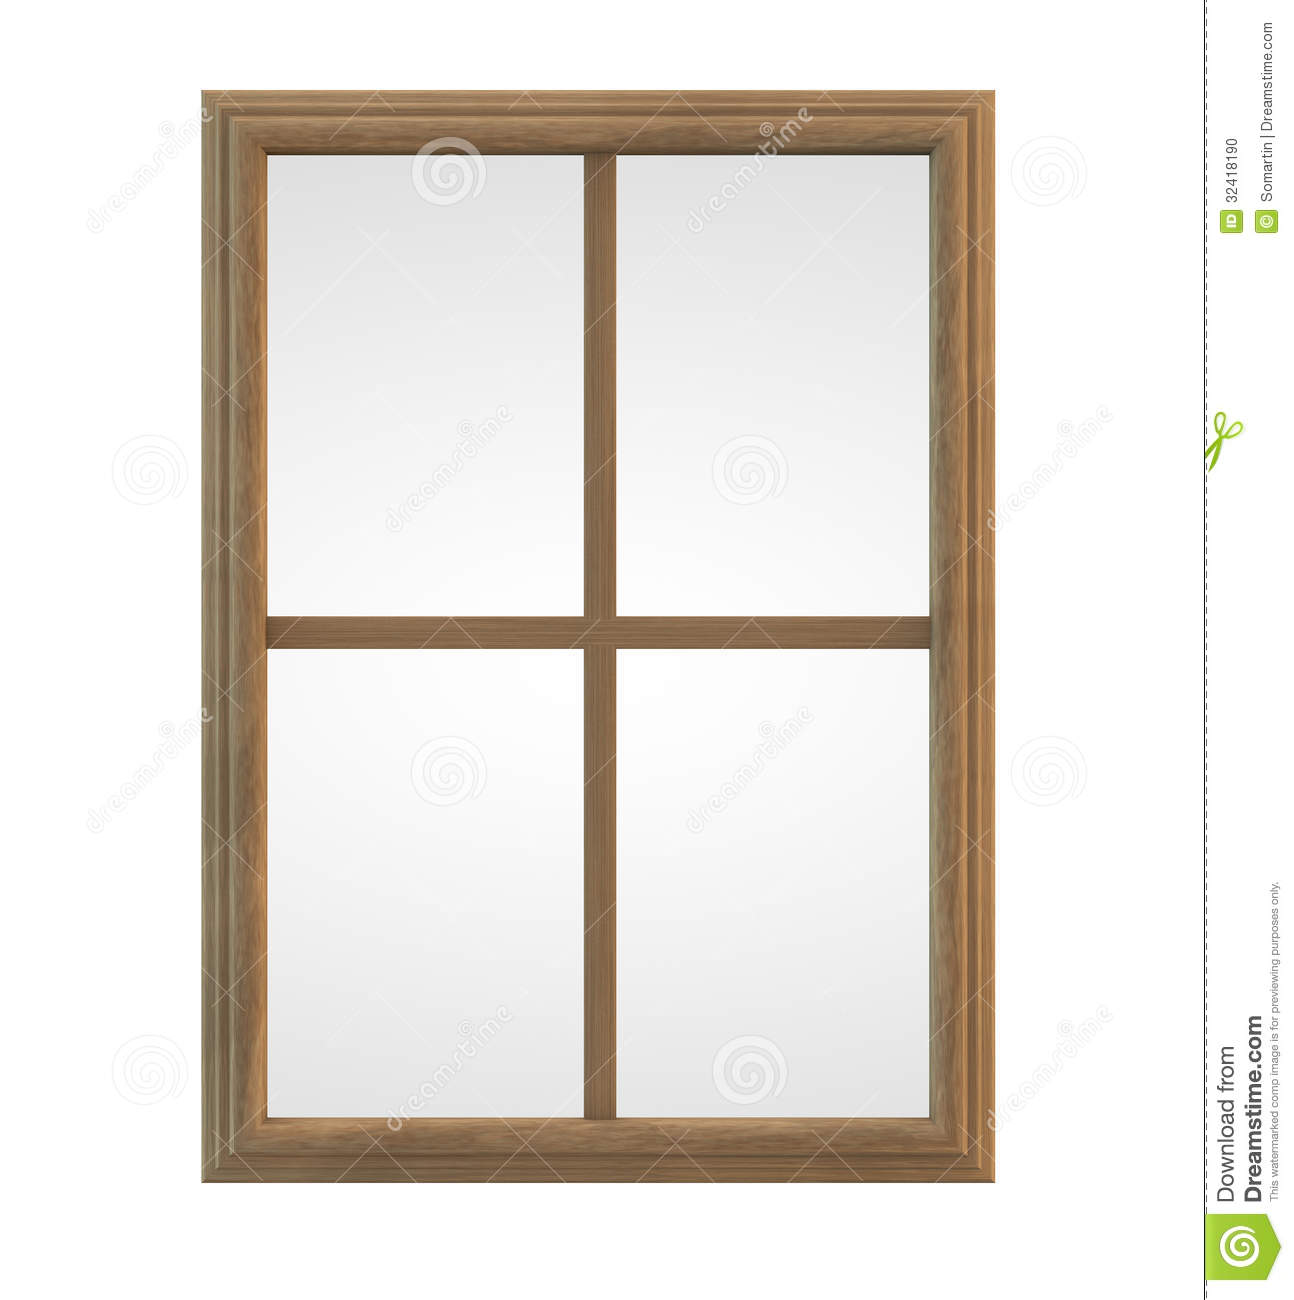 Wooden Window Frame Stock Photo - Image: 32418190